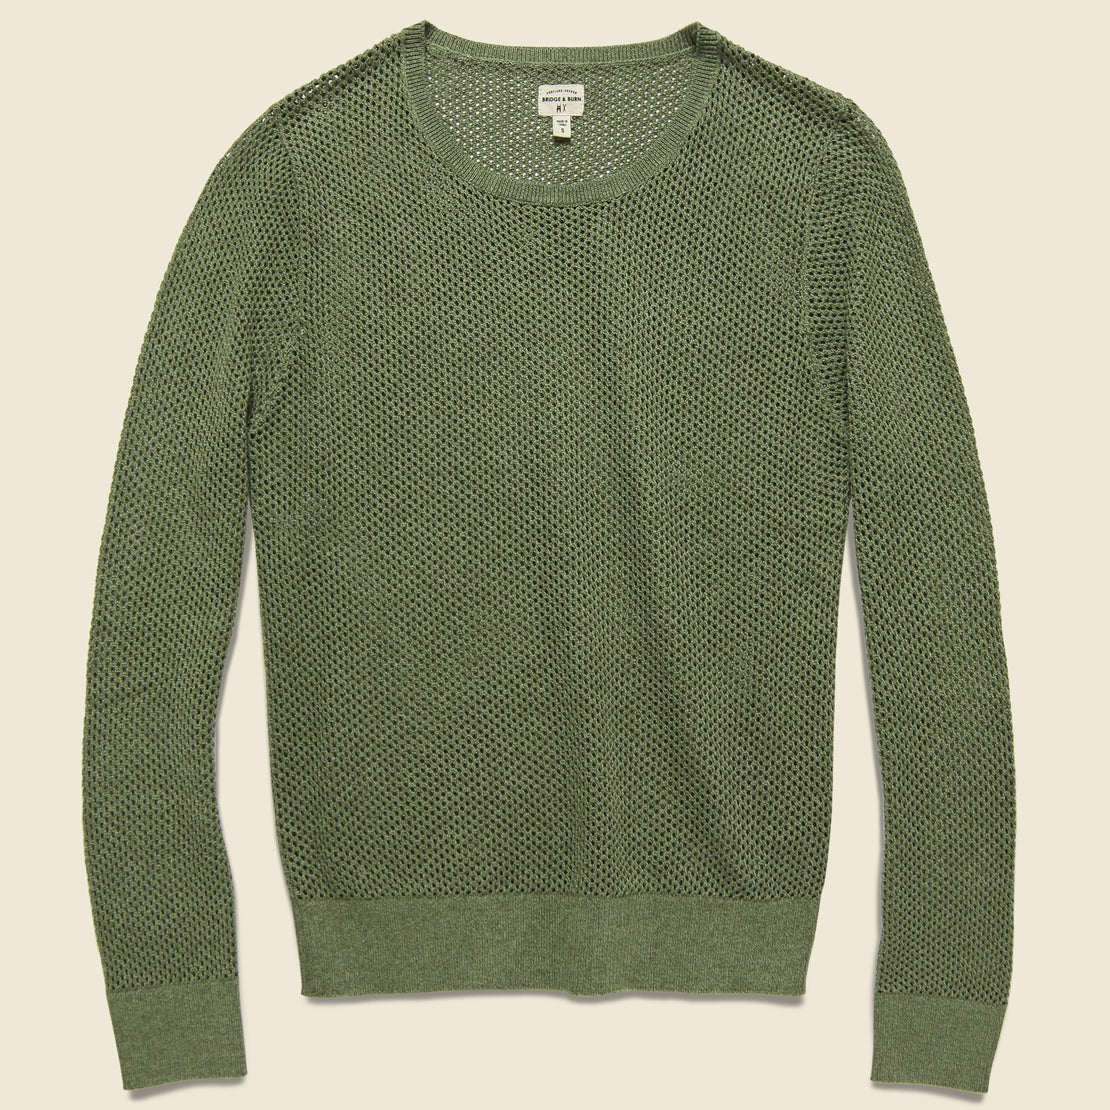 Bridge & Burn Josephine Knit Top - Olive Heather